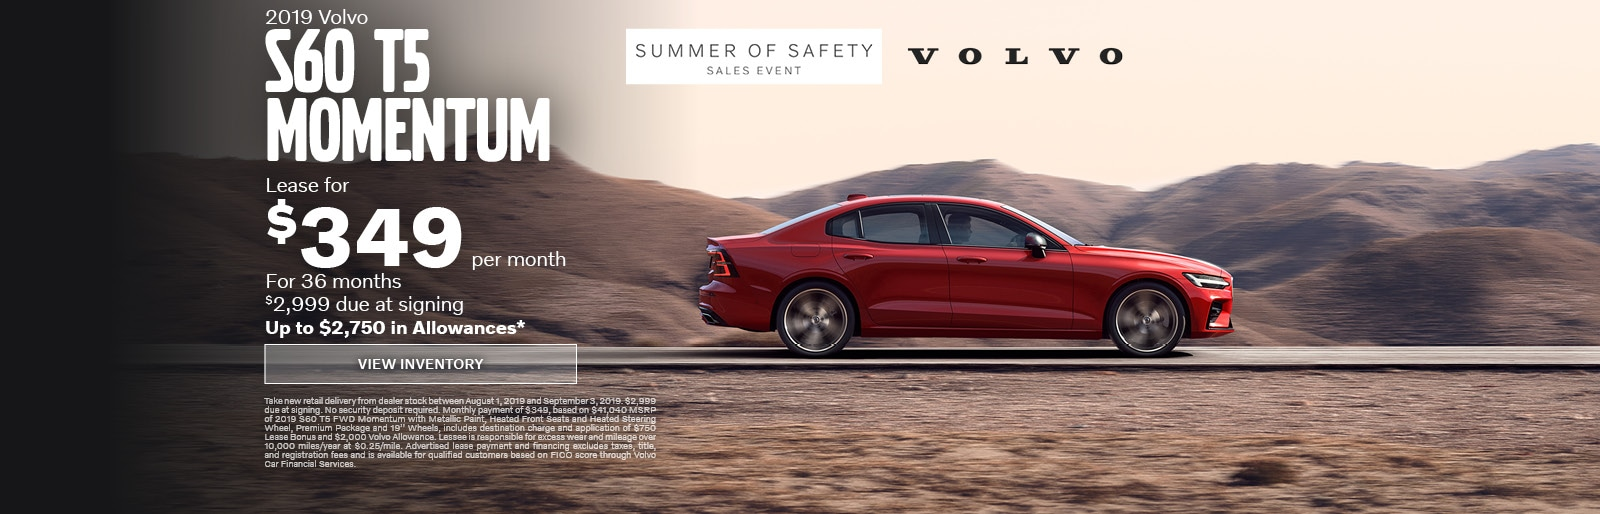 Cars For Sale Bay Area >> Volvo Cars Tampa New 2019 2020 Volvo Used Car Dealer Near Wesley